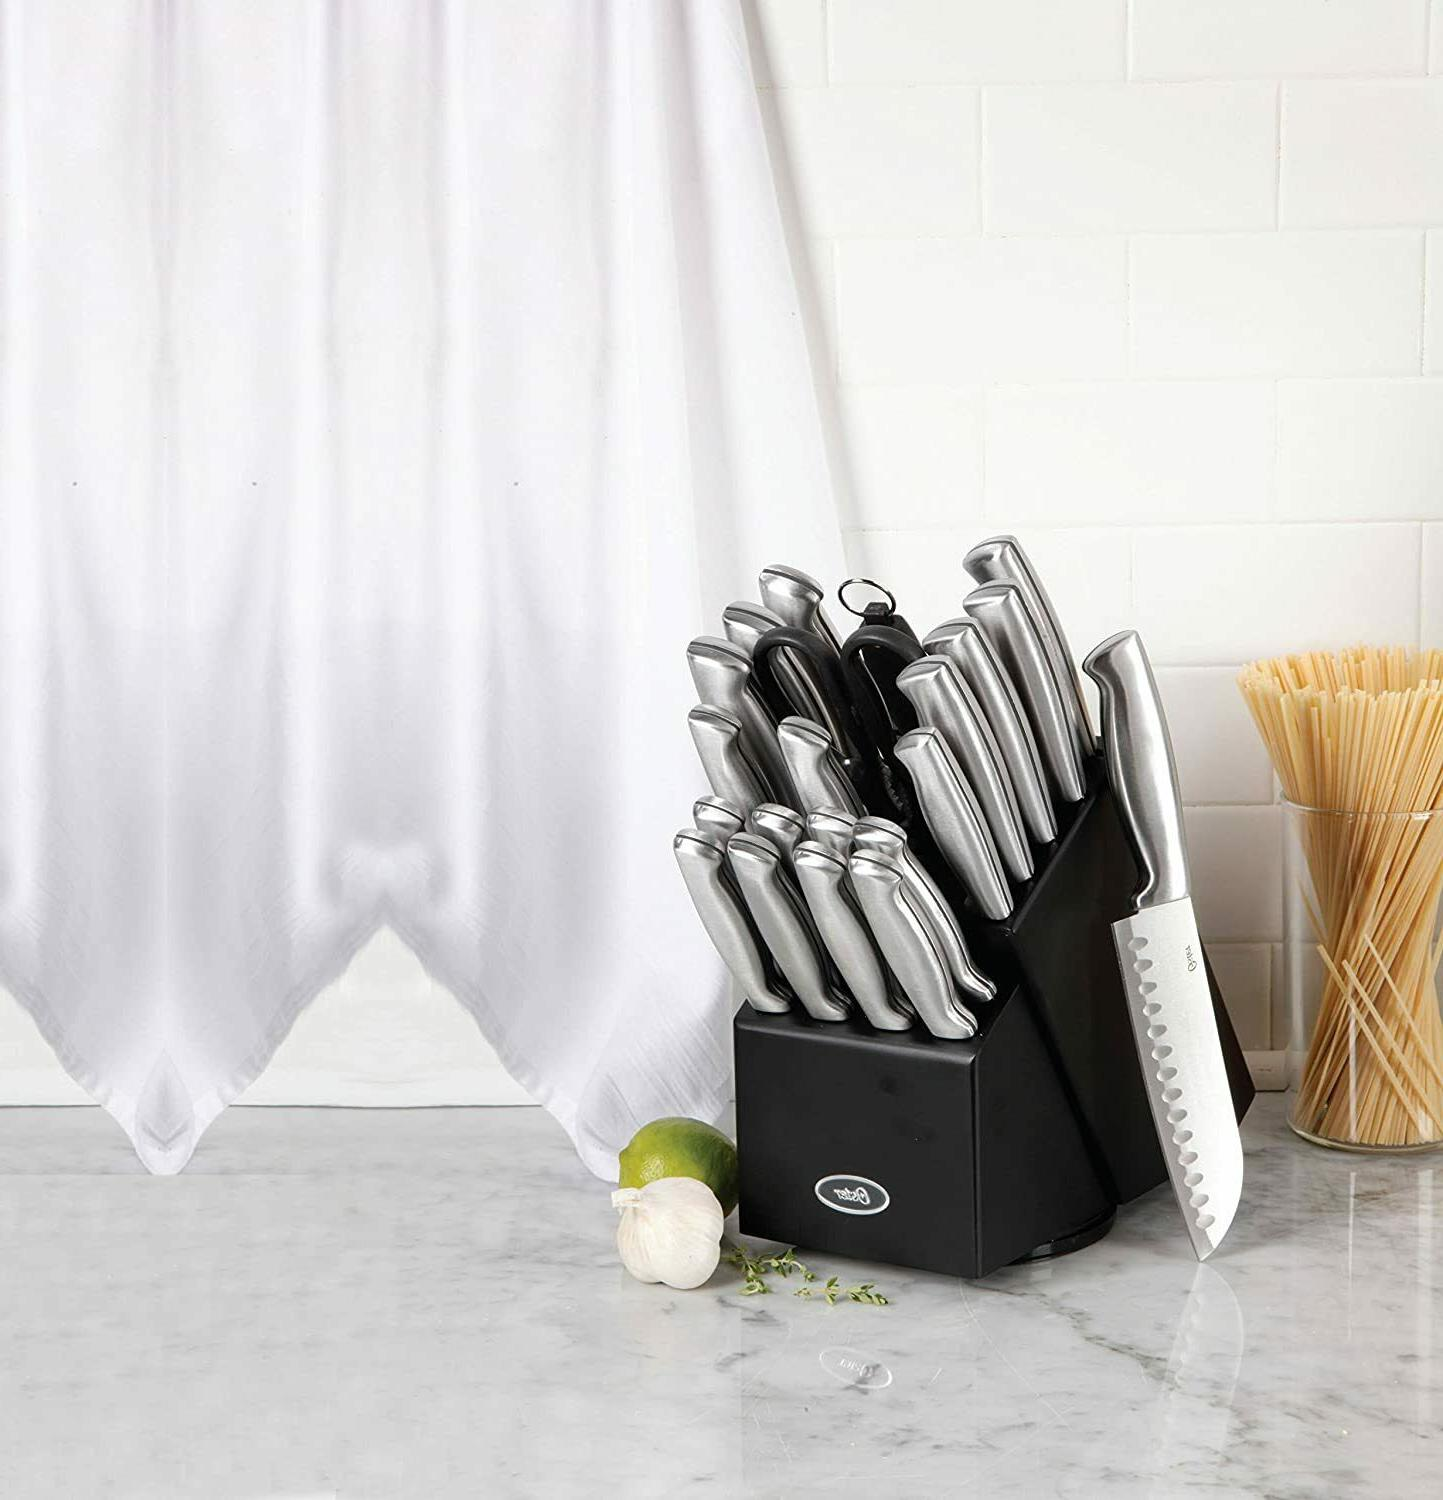 OSTER 22pc STAINLESS KNIVES SET